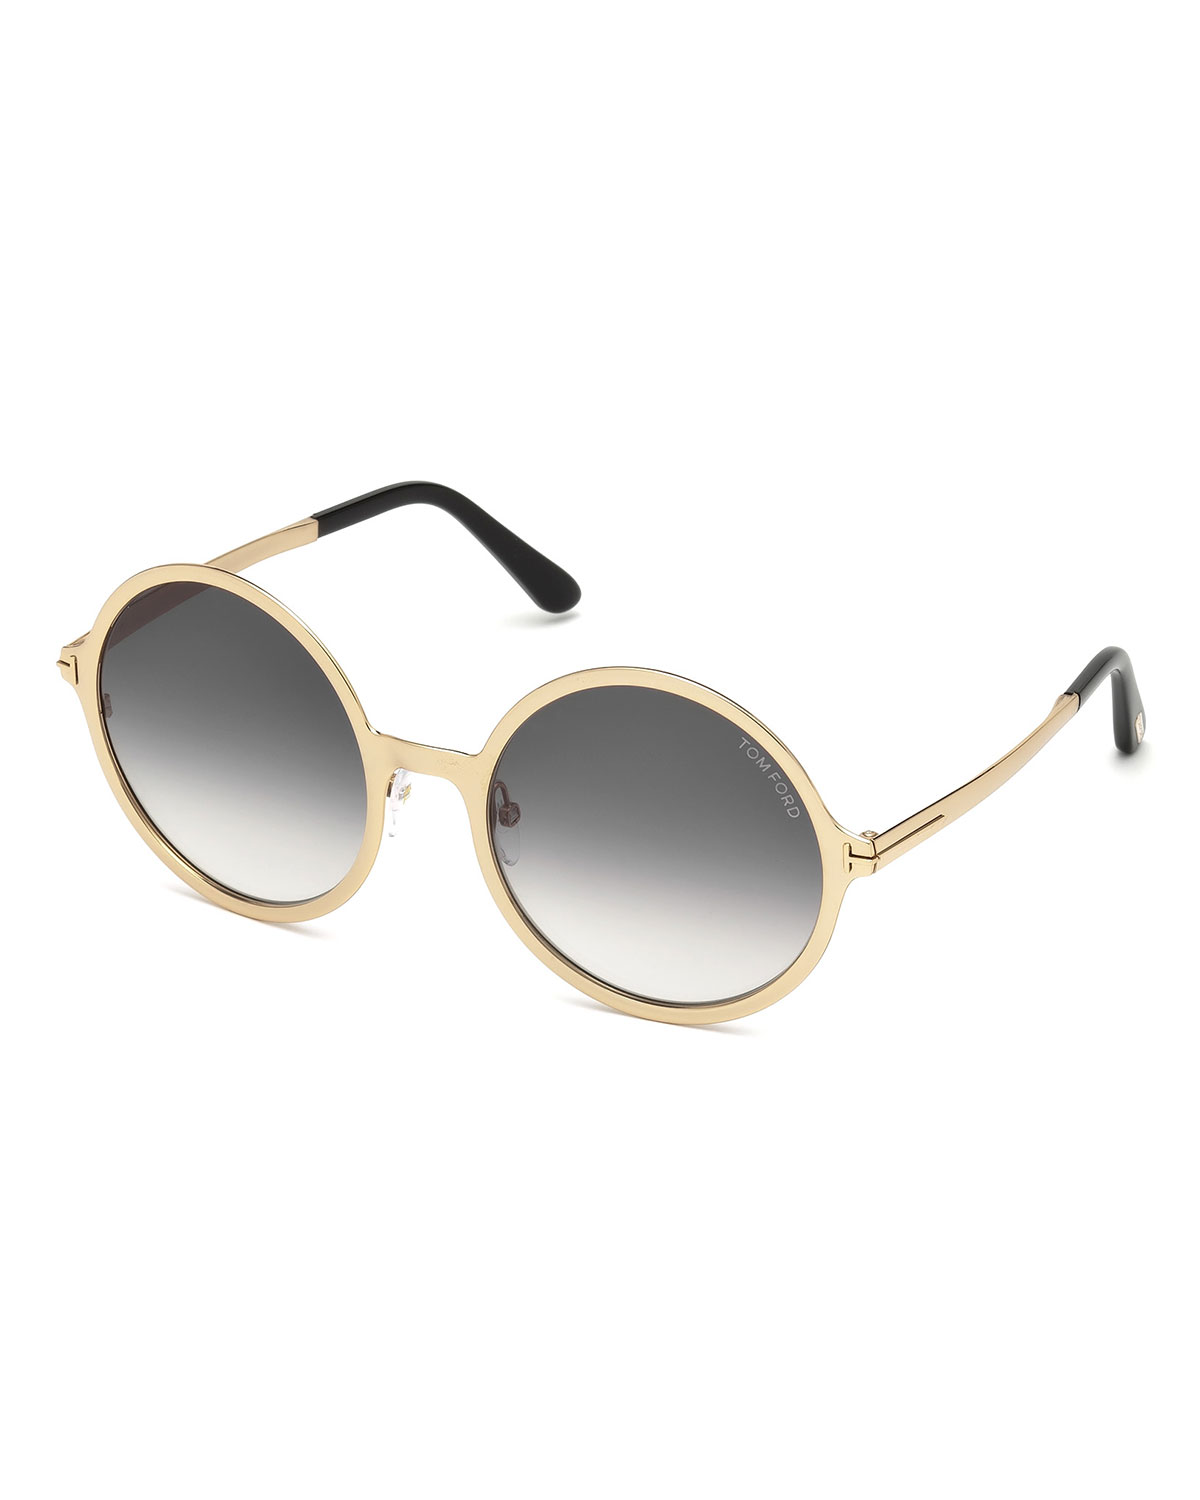 c855c3abf20 TOM FORD Round Gradient Metal Sunglasses